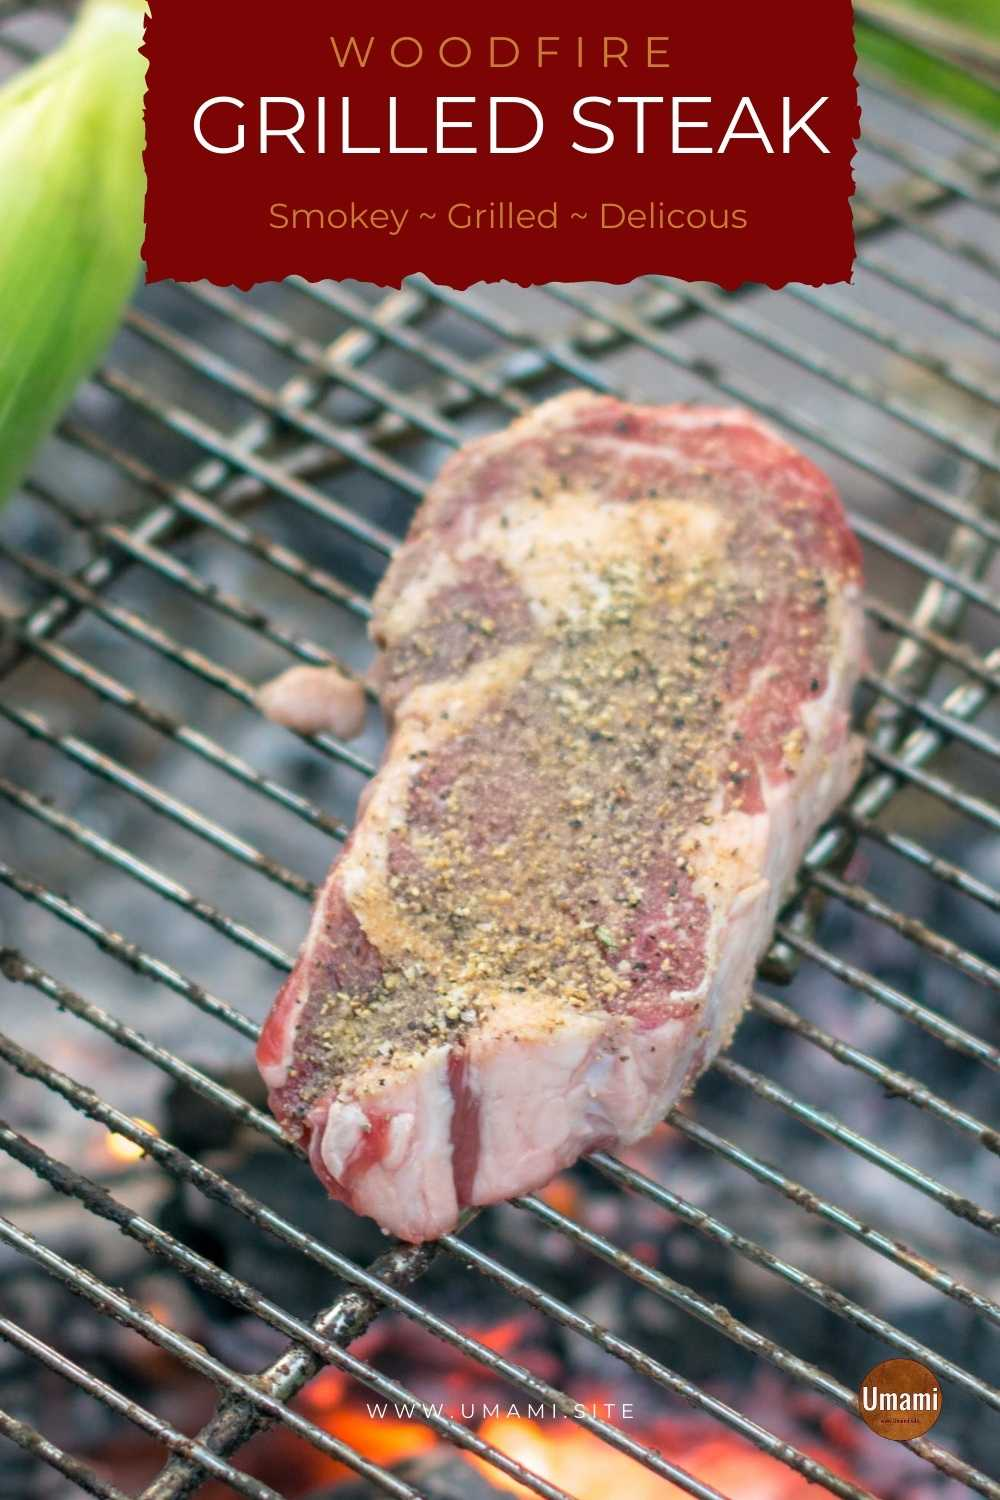 Woodfire Grilled Steak